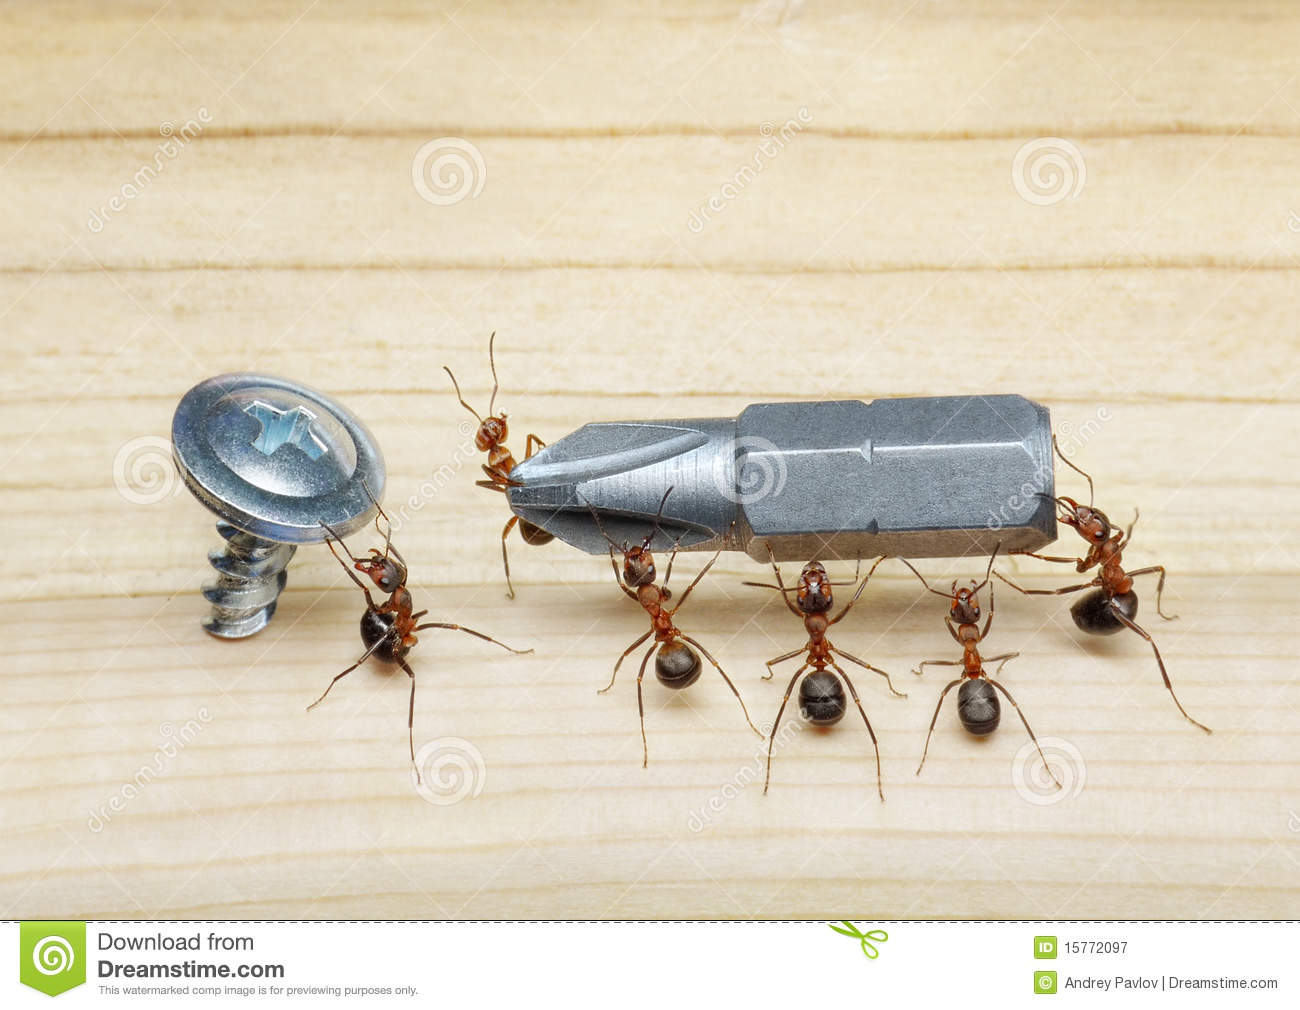 Team of ants work with screwdriver, teamwork